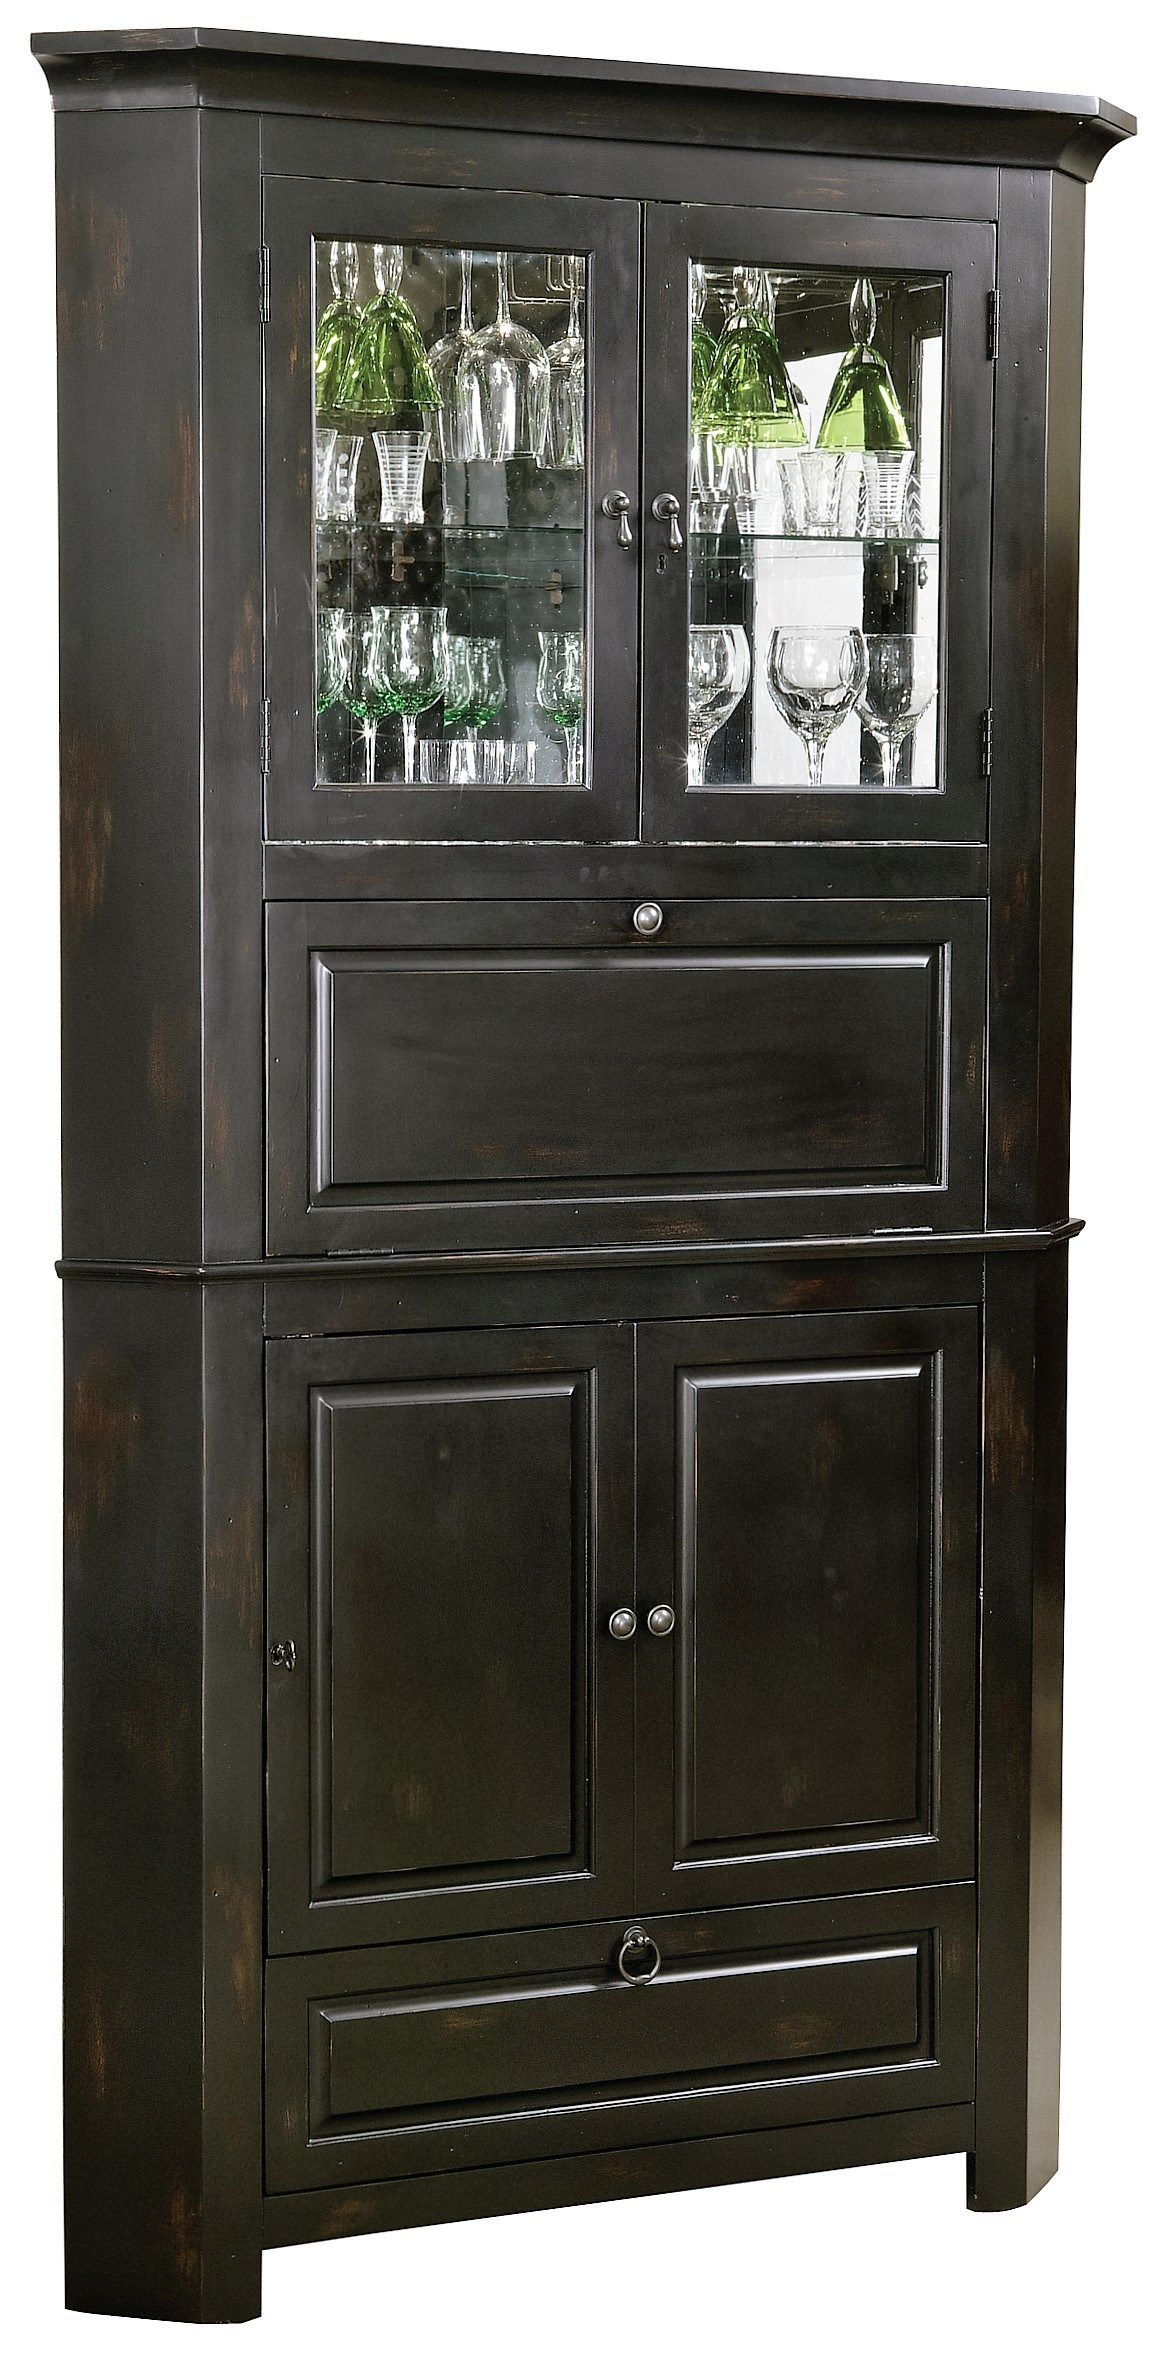 by and gardiner wolf cabinet designs products cabinets furniture sunny bar rustic mini